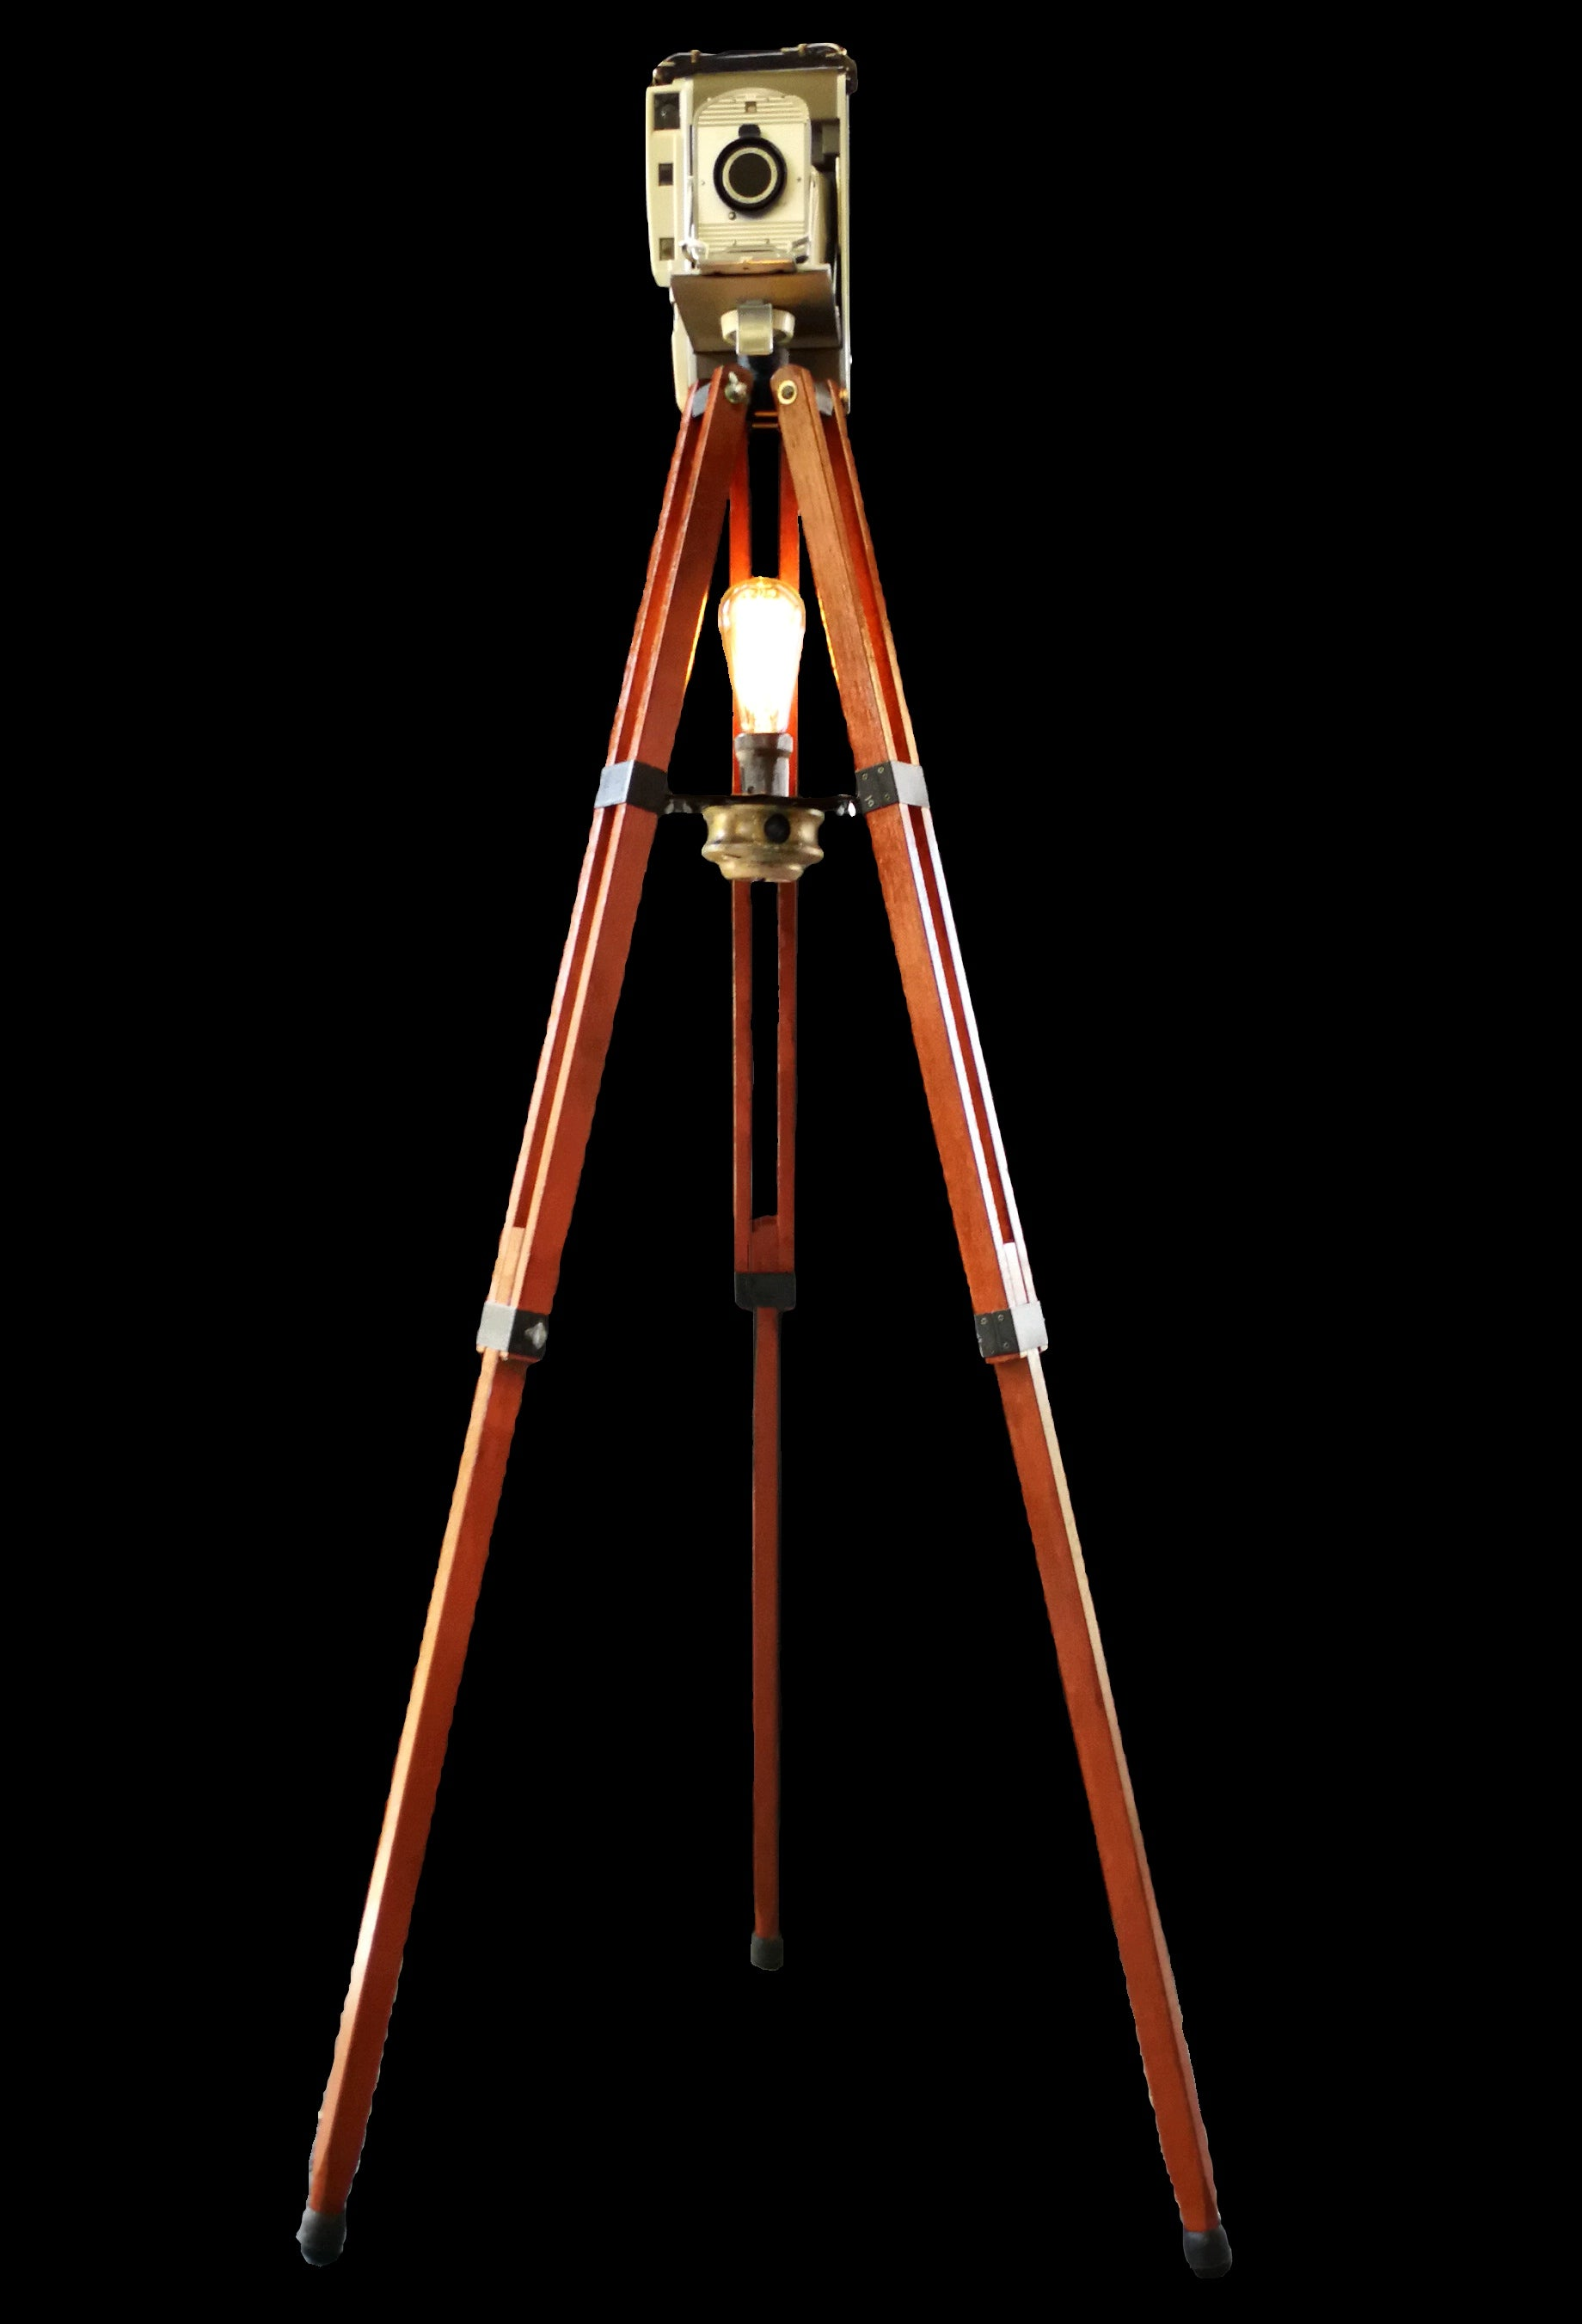 Tripod light with vintage camera front view